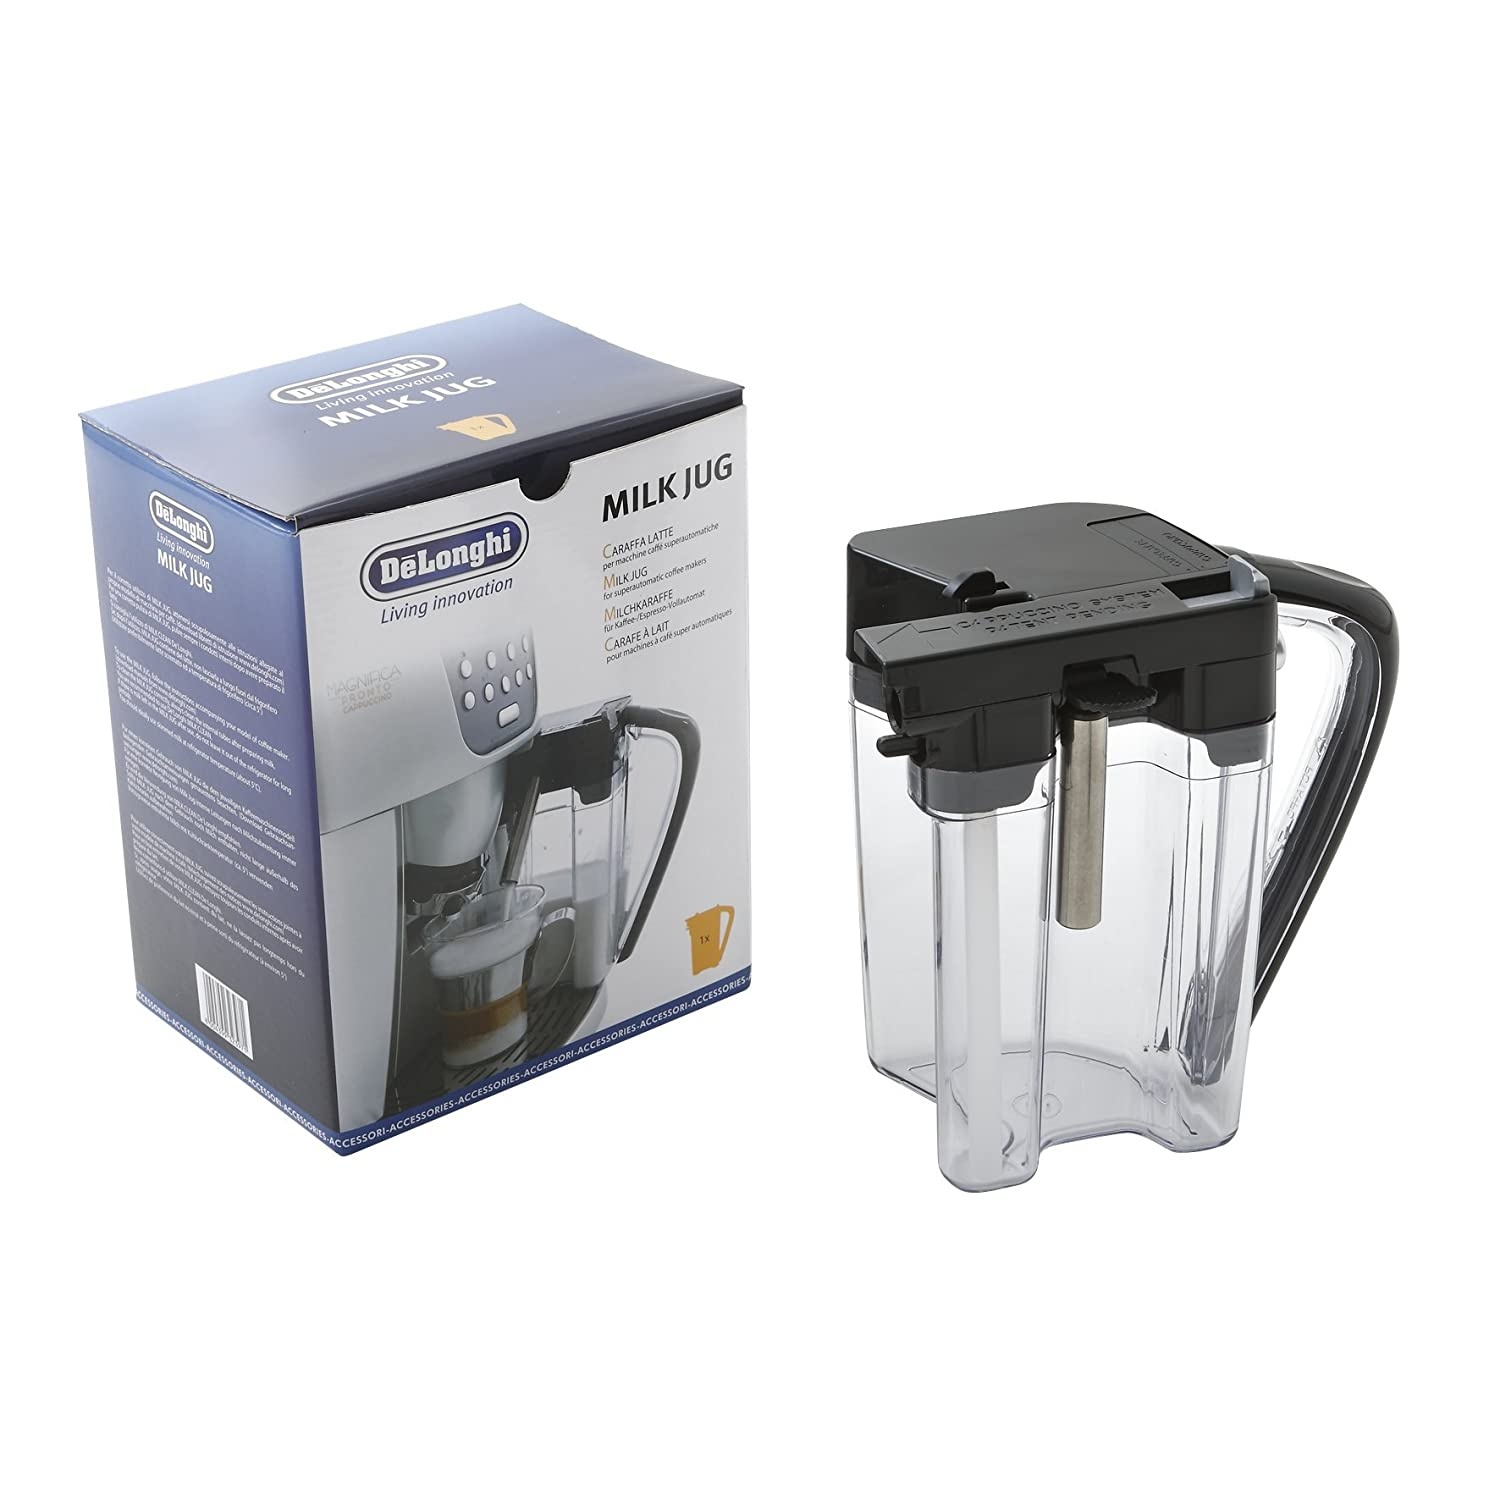 De'Longhi Coffee Maker Milk Jug for Perfecta Range